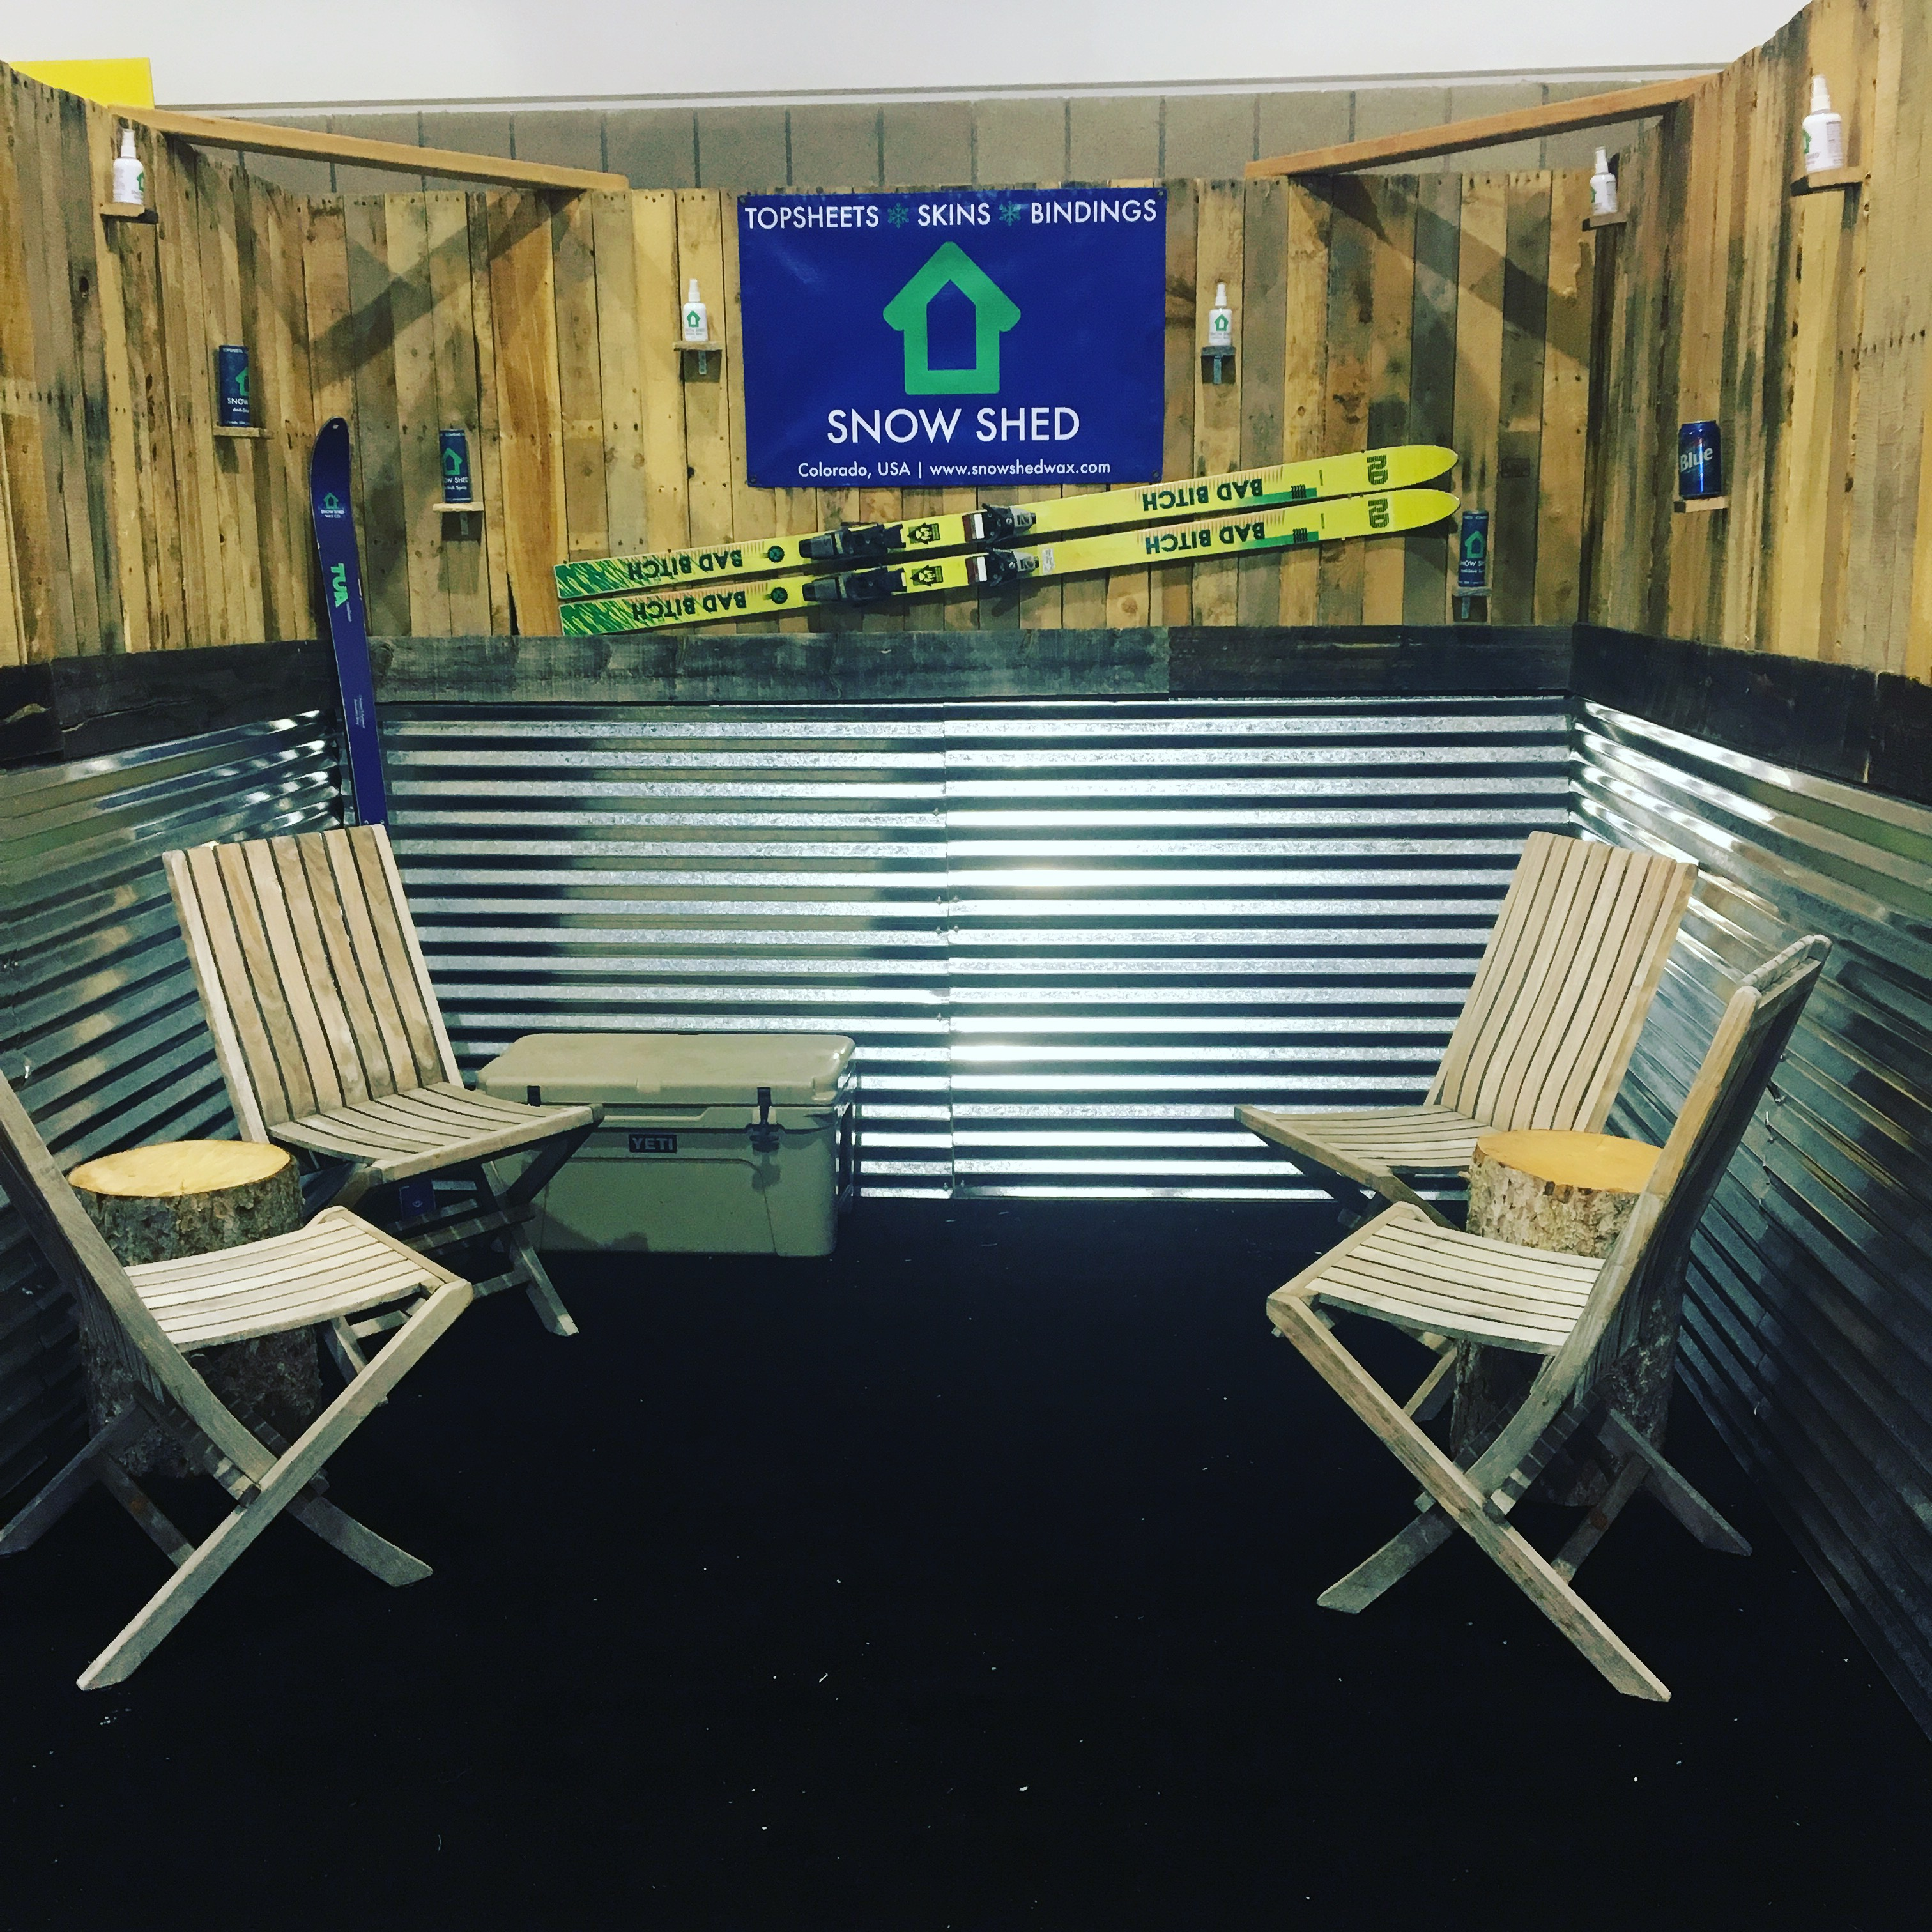 Wood Trade Show Booth : 10x10 handcrafted wooden tradeshow booth usedbooths